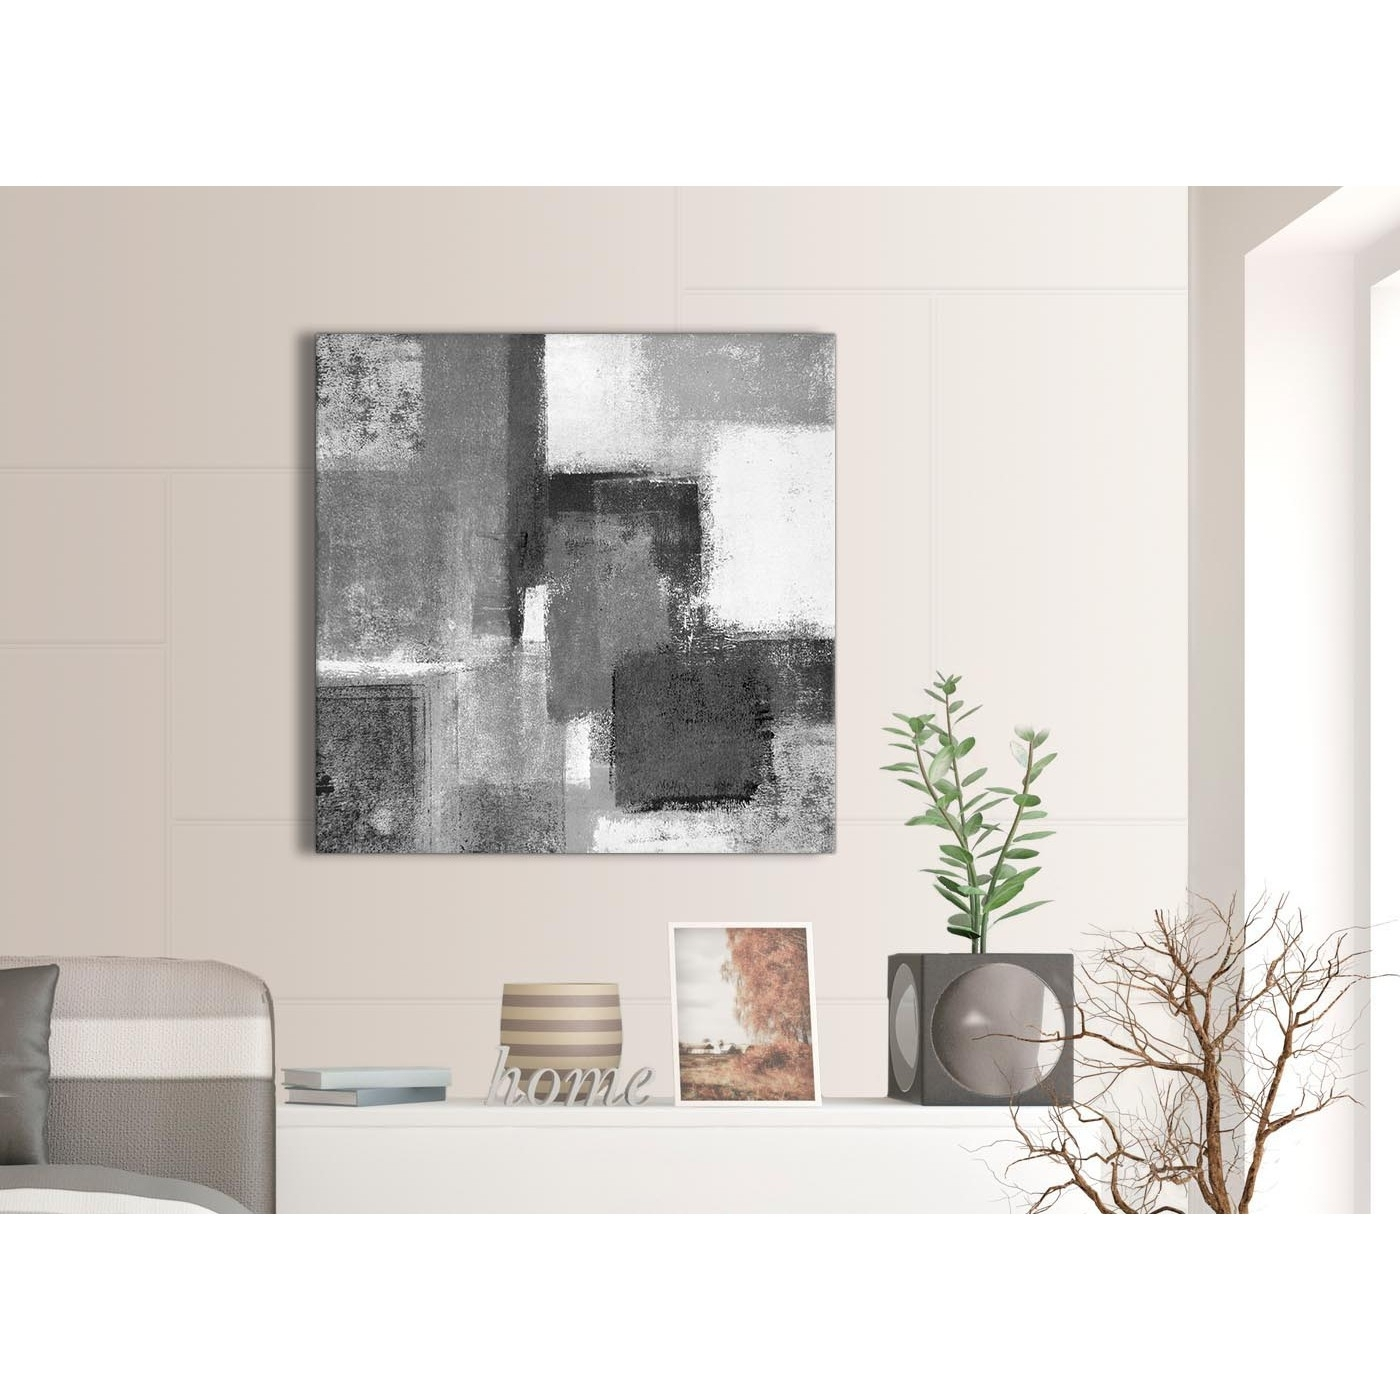 Black White Grey Abstract Office Canvas Wall Art Decorations 1s368l Regarding Recent Gray Canvas Wall Art (View 2 of 20)